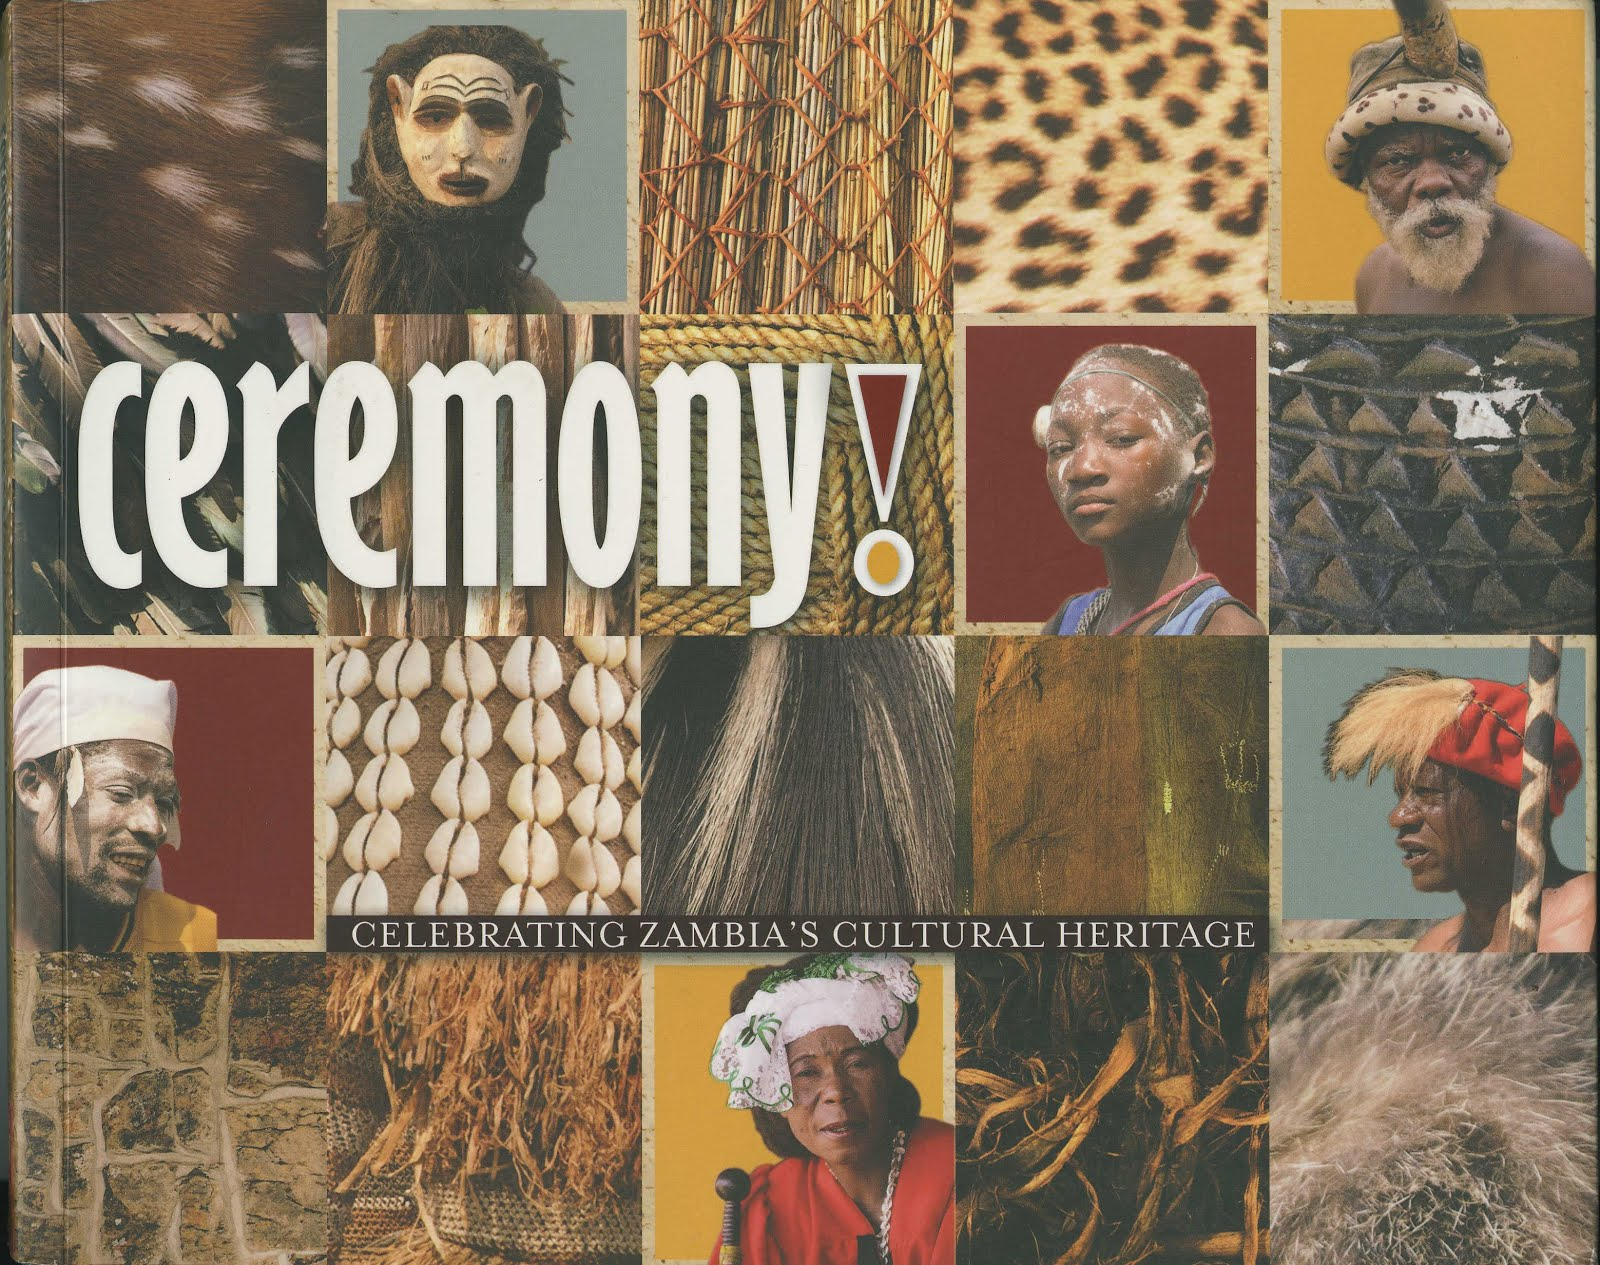 Ceremony! Celebrating Zambia's Traditional Heritage